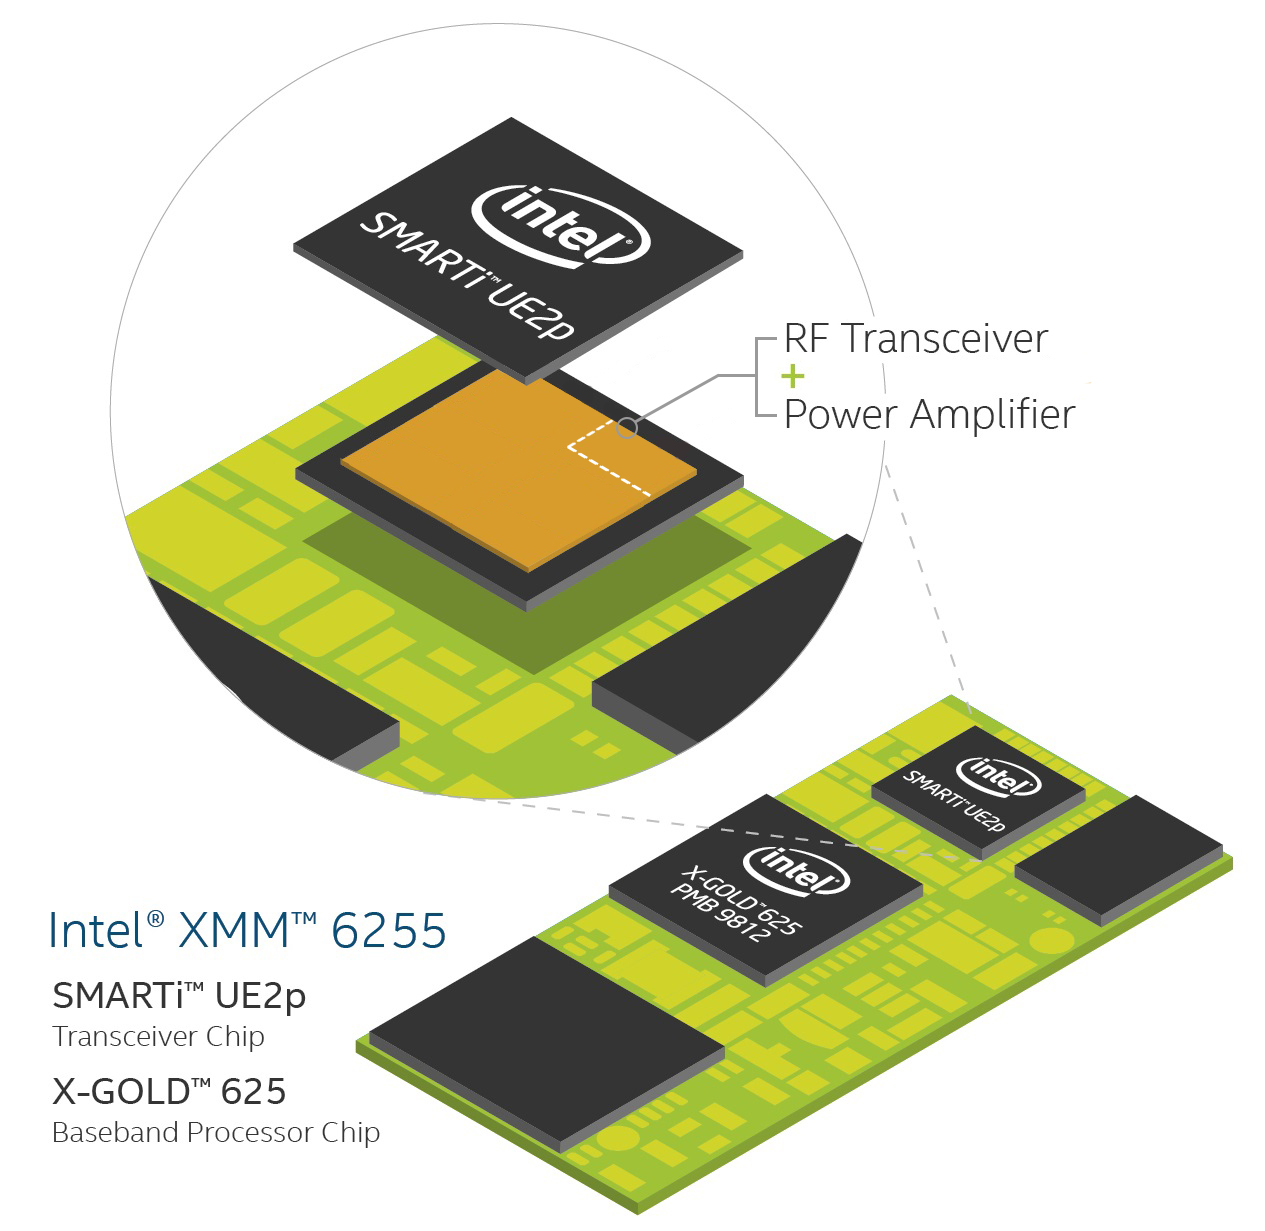 Intel Showcases World's Smallest 3G Modem that Enables 3G Communication even in Low-Signal Areas